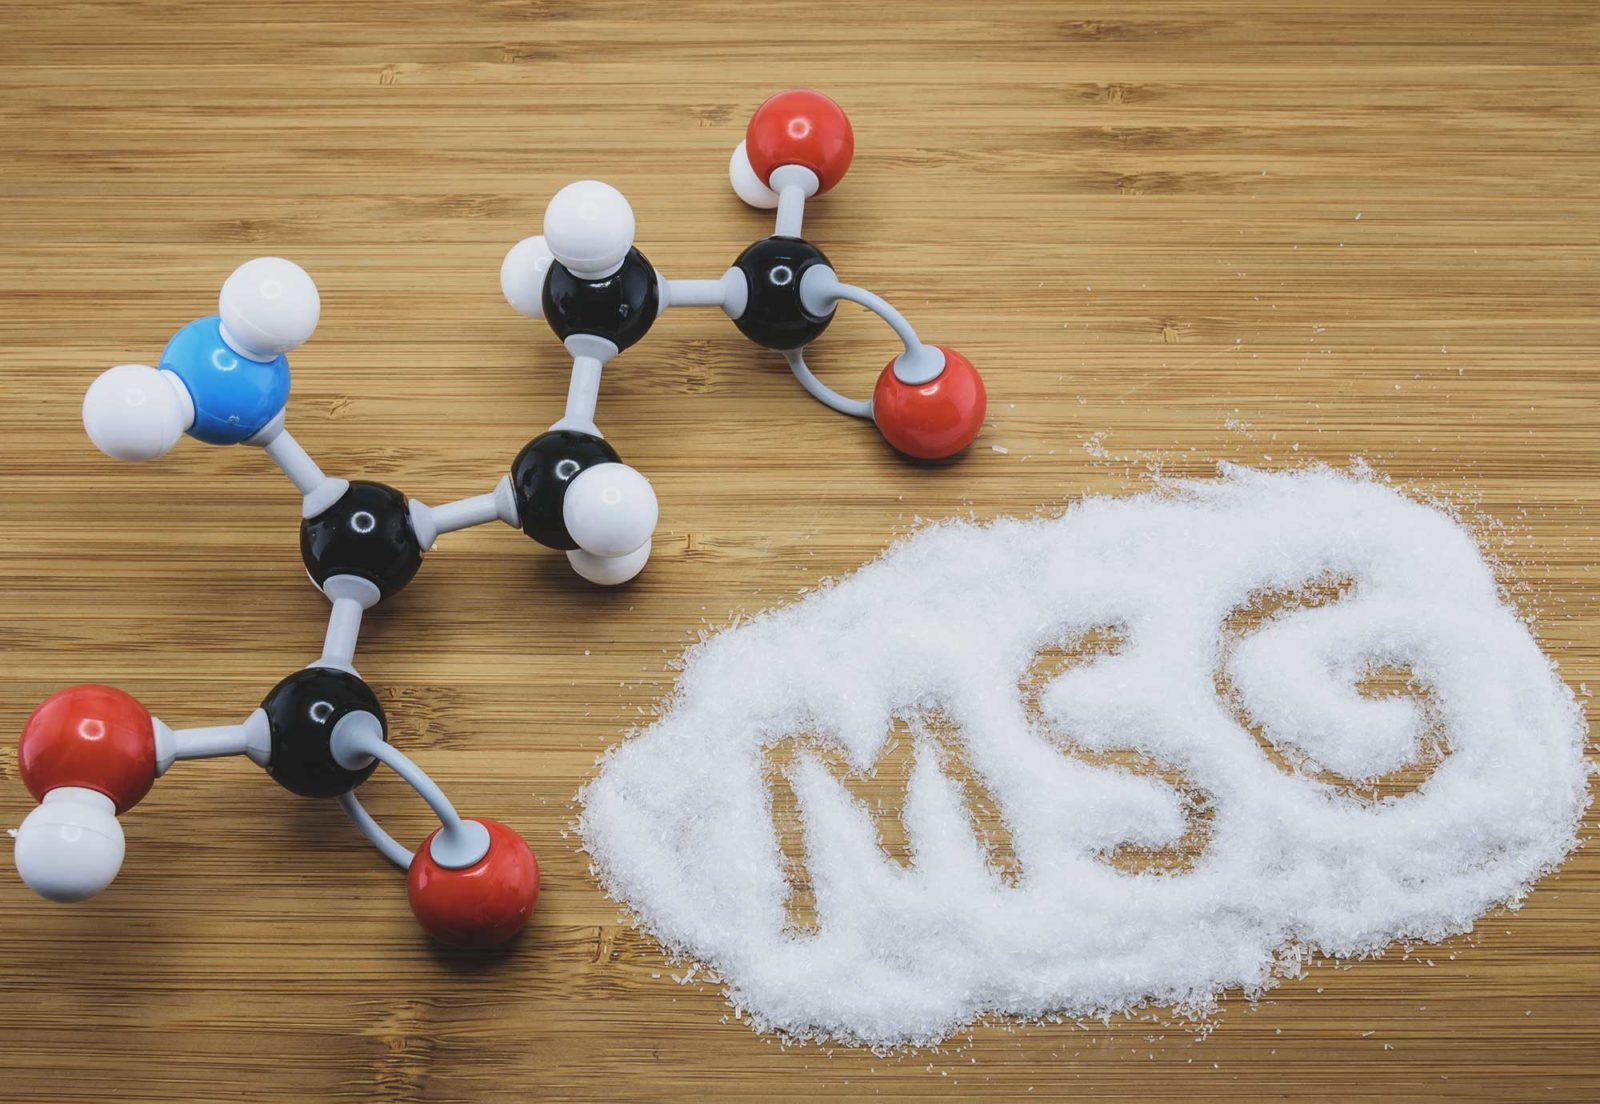 Molecular structure of Monosodium glutamate (MSG)